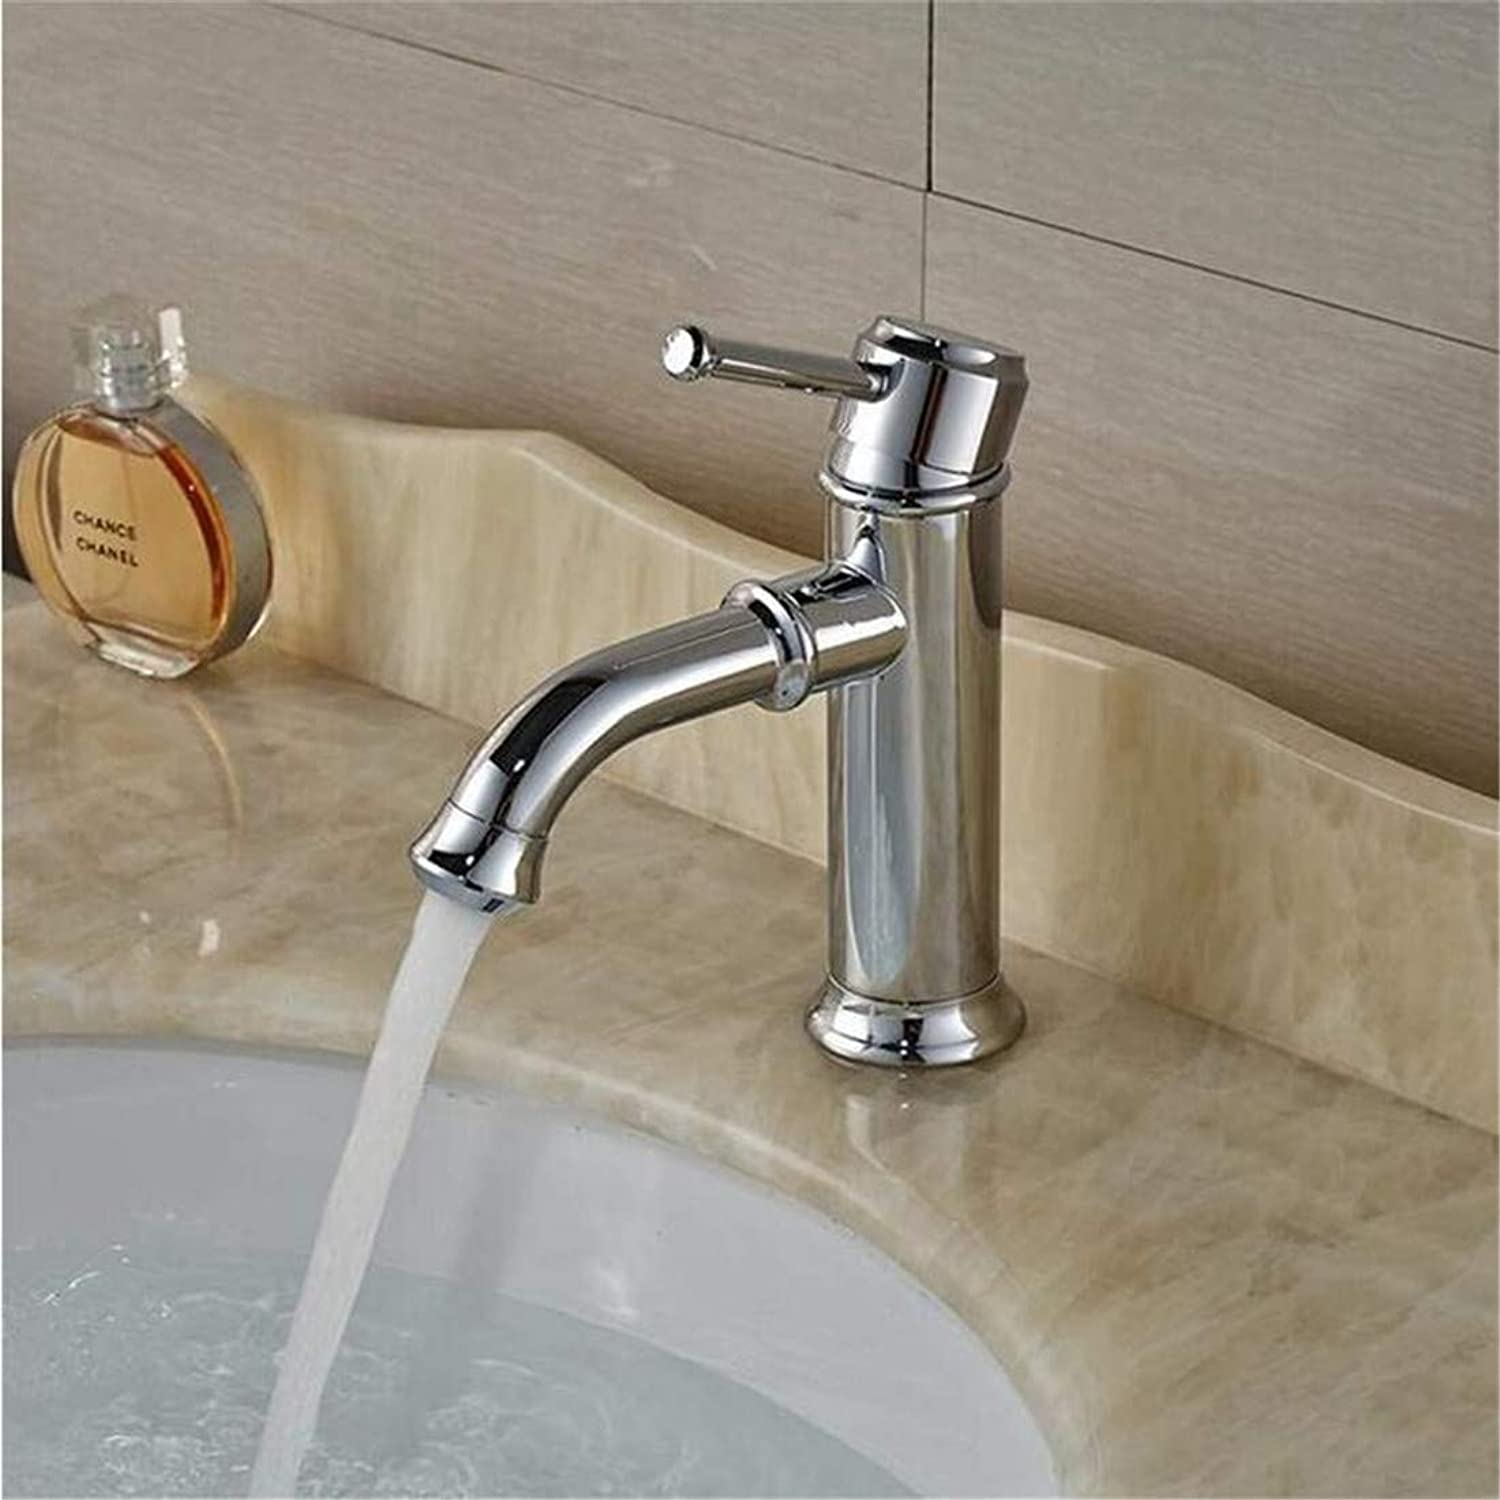 Kitchen Bath Basin Sink Bathroom Taps Washbasin Mixer Bathroom Faucet Single Handle Hot Cold Water Mixer Ctzl2071